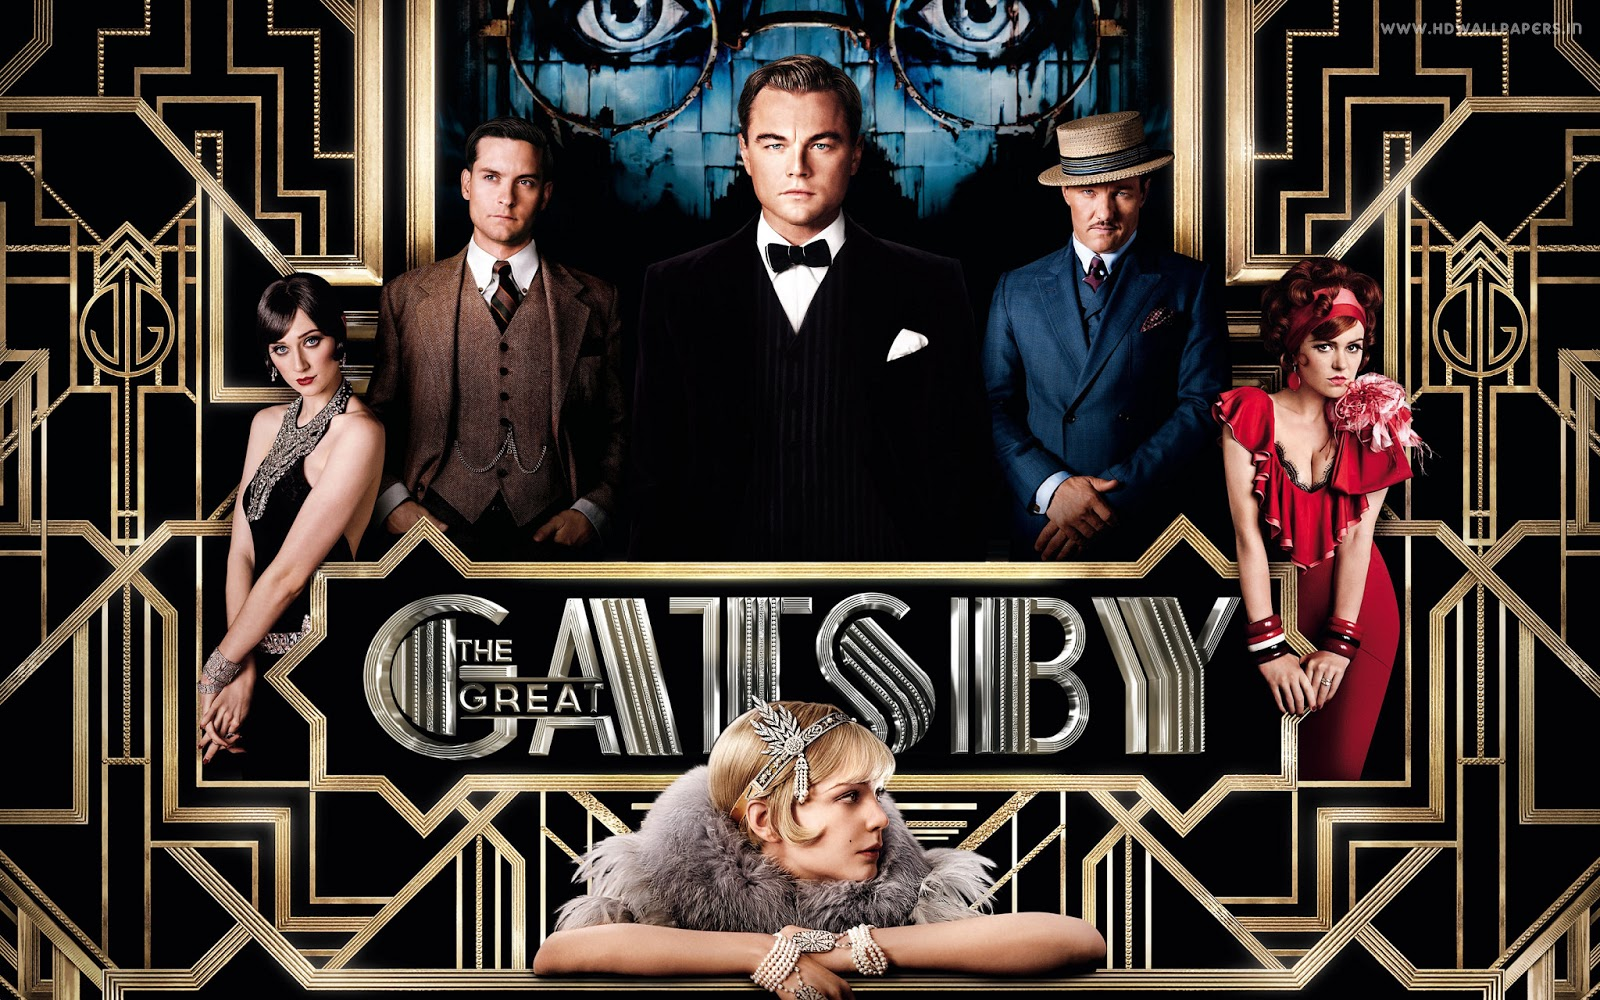 The great gatsby franche meets fashion